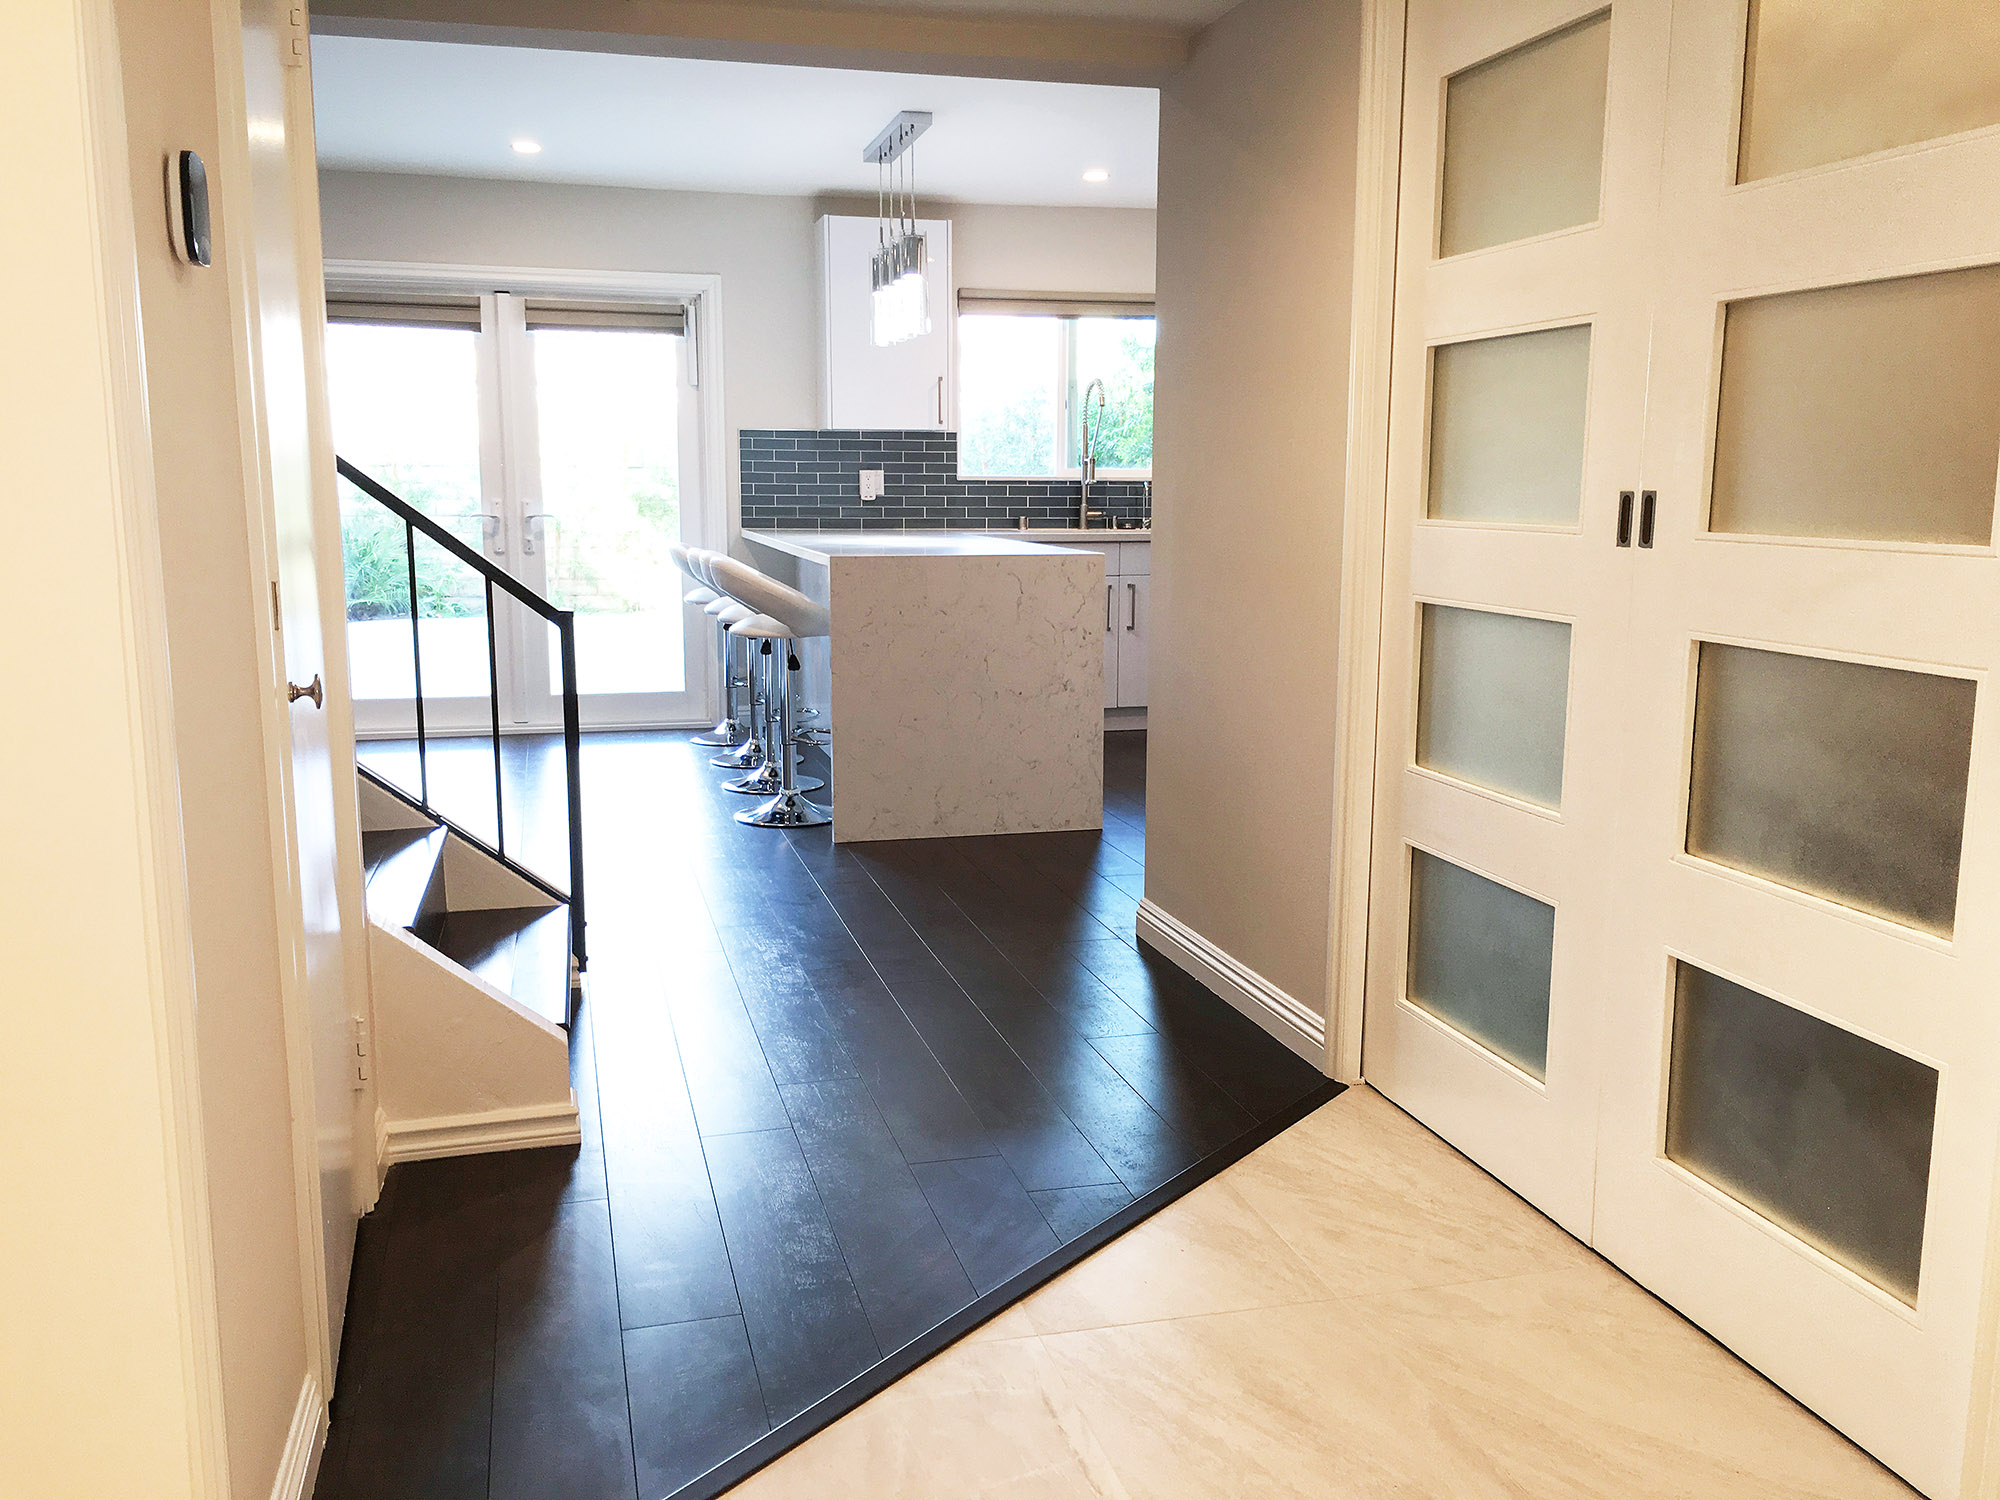 Town house complete remodel